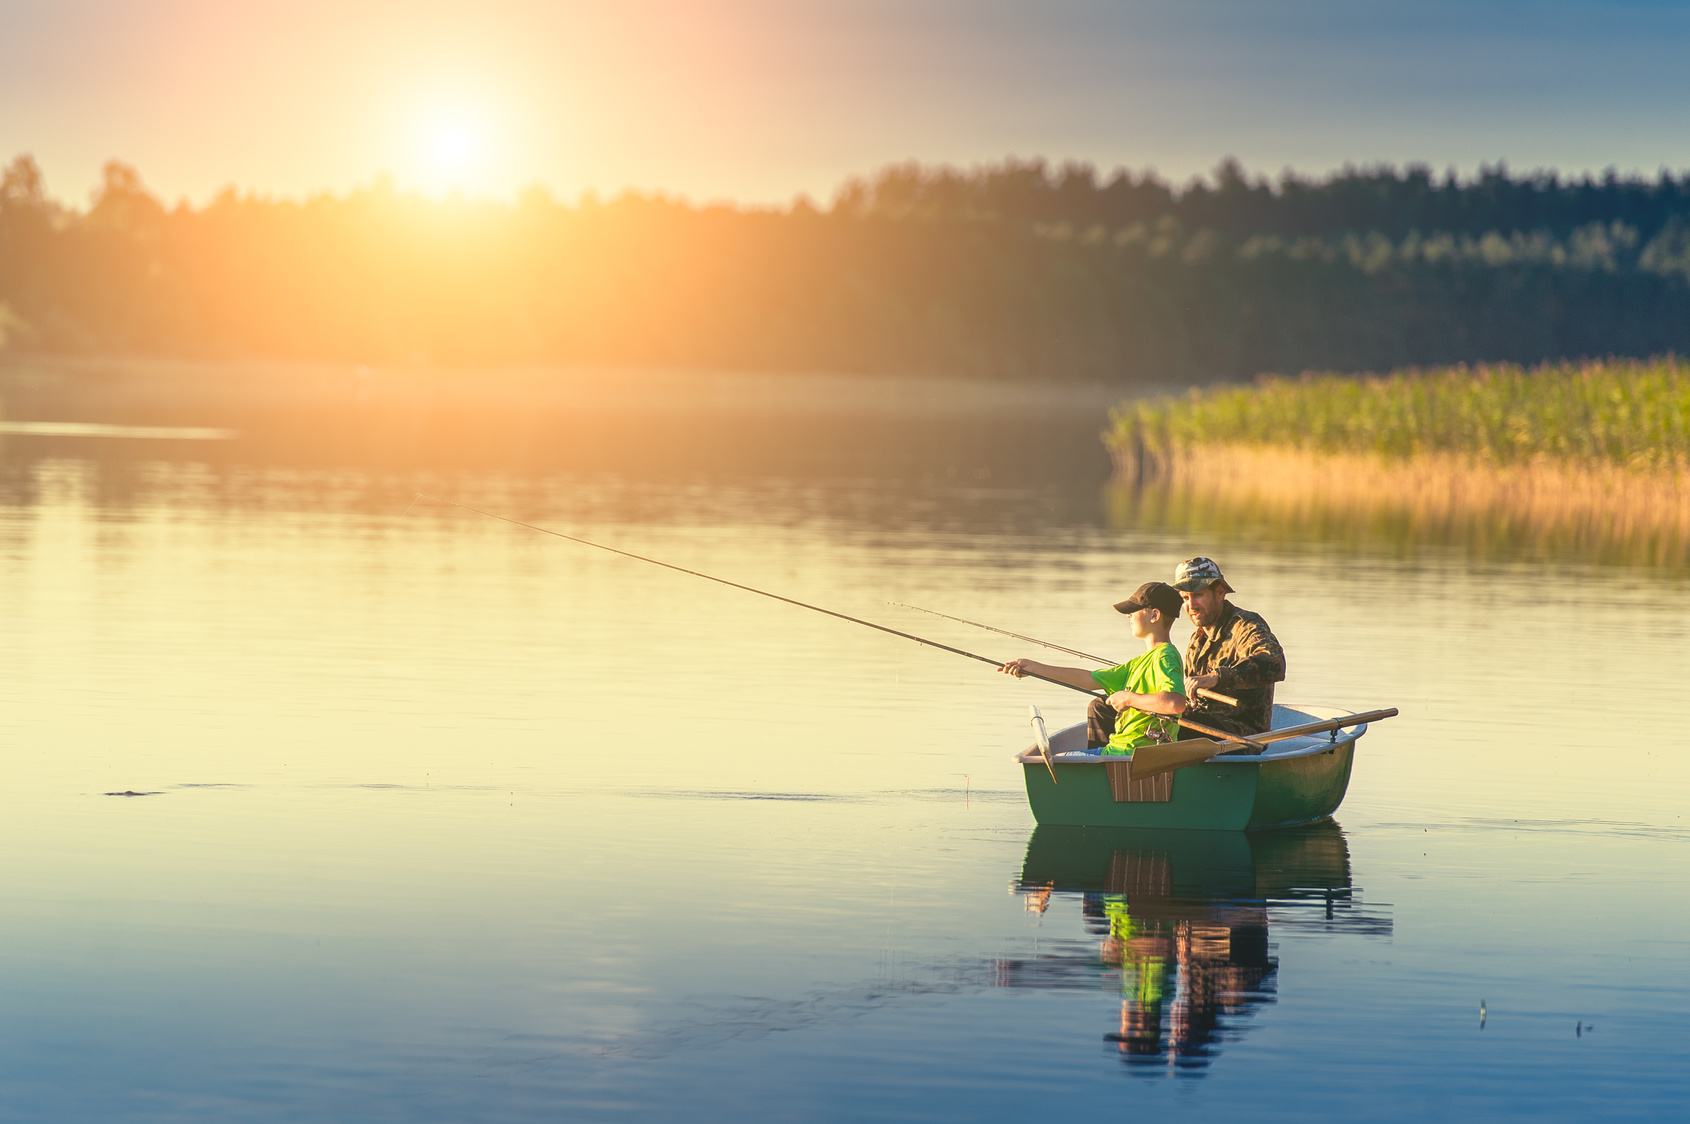 Father and son catch fish from a boat at sunset my westshore for Fishing boat rentals near me